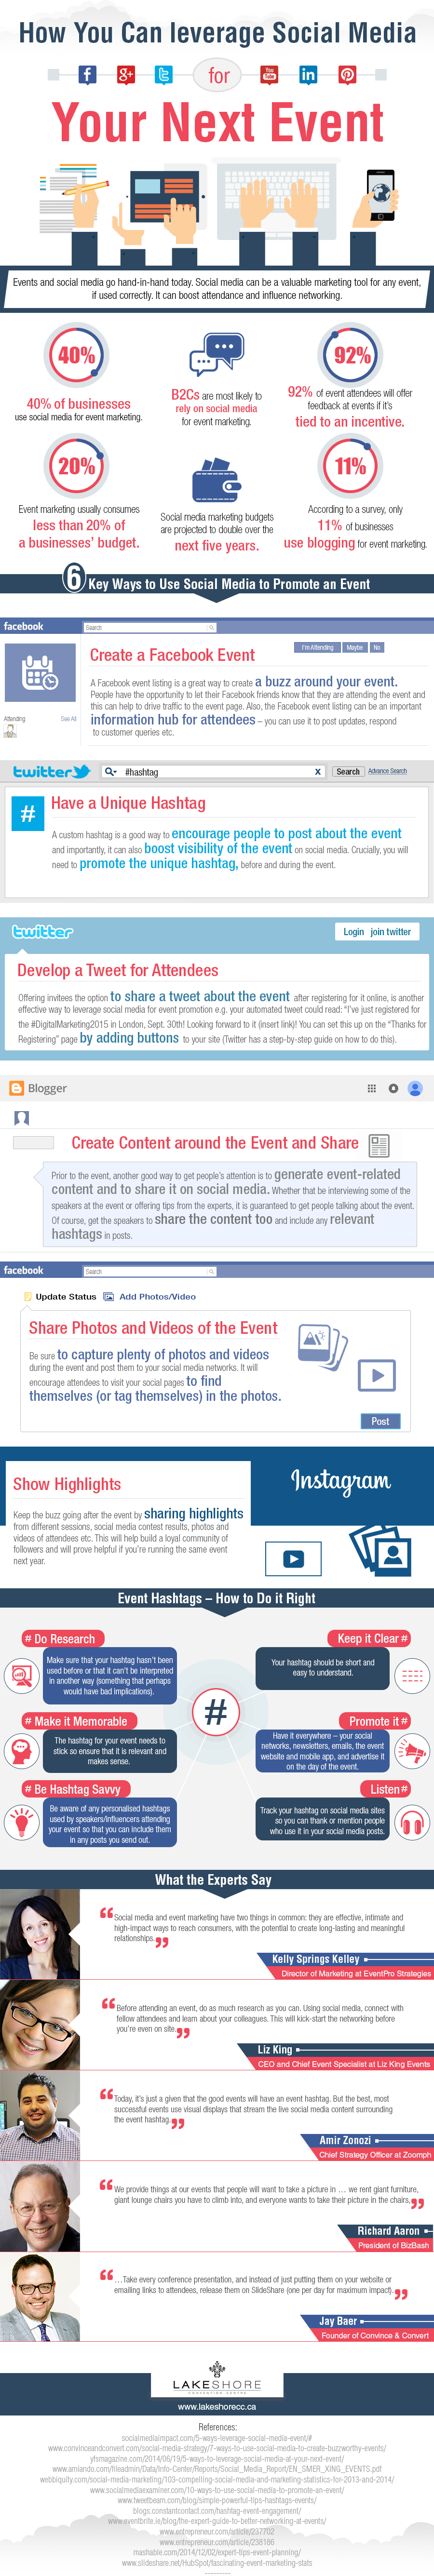 How to leveage social media for event marketing